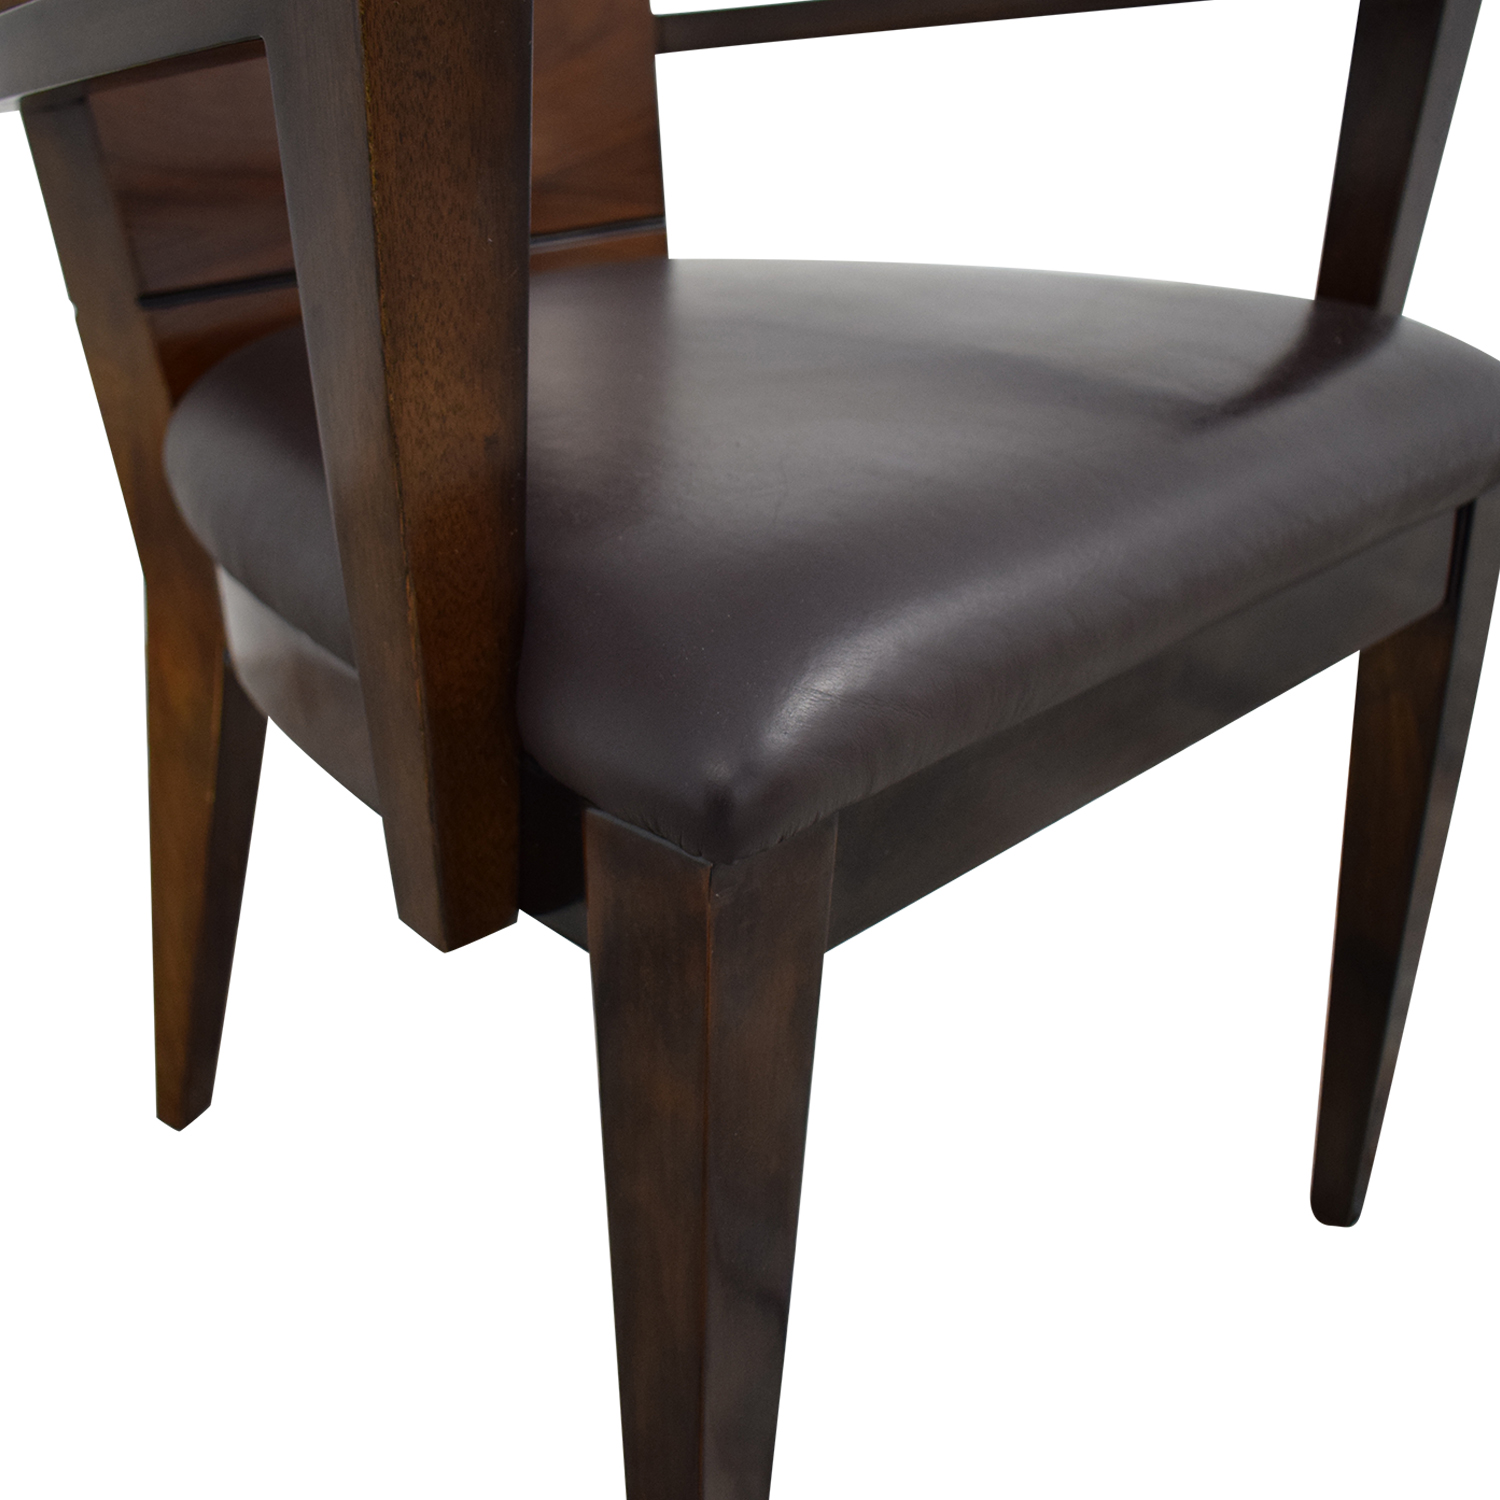 Elio High Gloss Wood and Leather Chair for sale